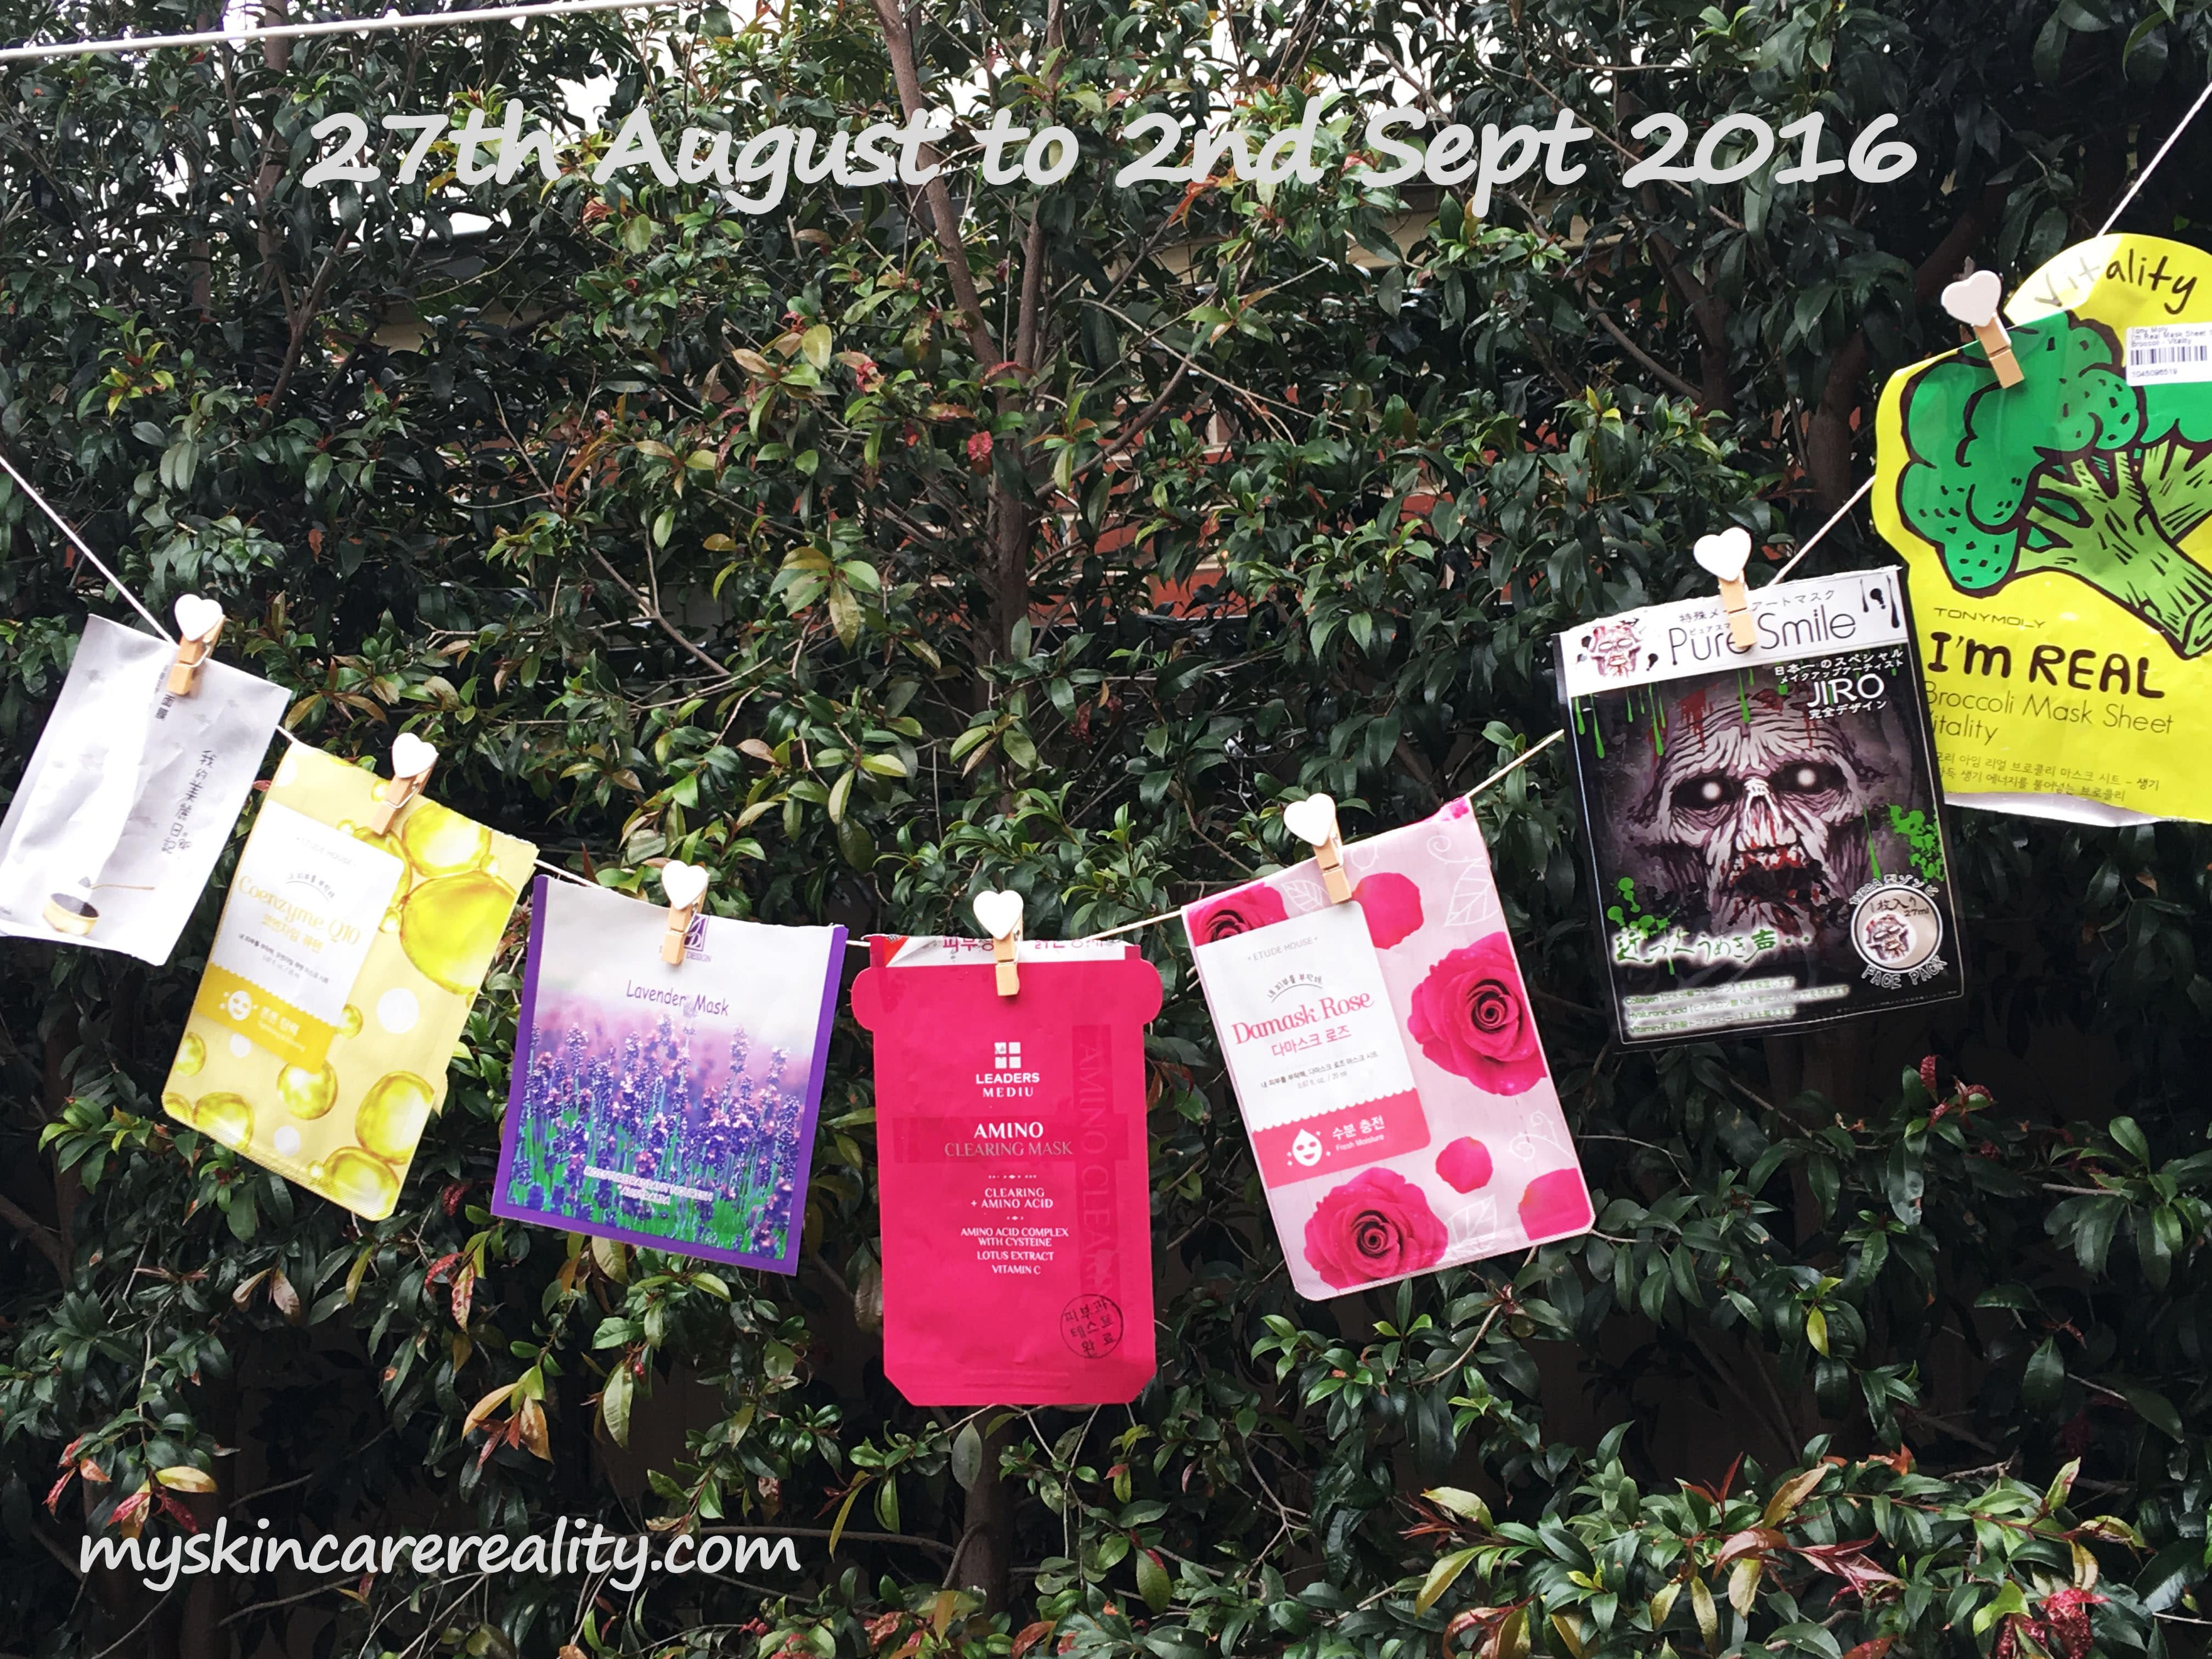 Daily Sheet Masks | Skincare Review | Week of 27th August to 2nd Sept 2016 | My Skincare Reality